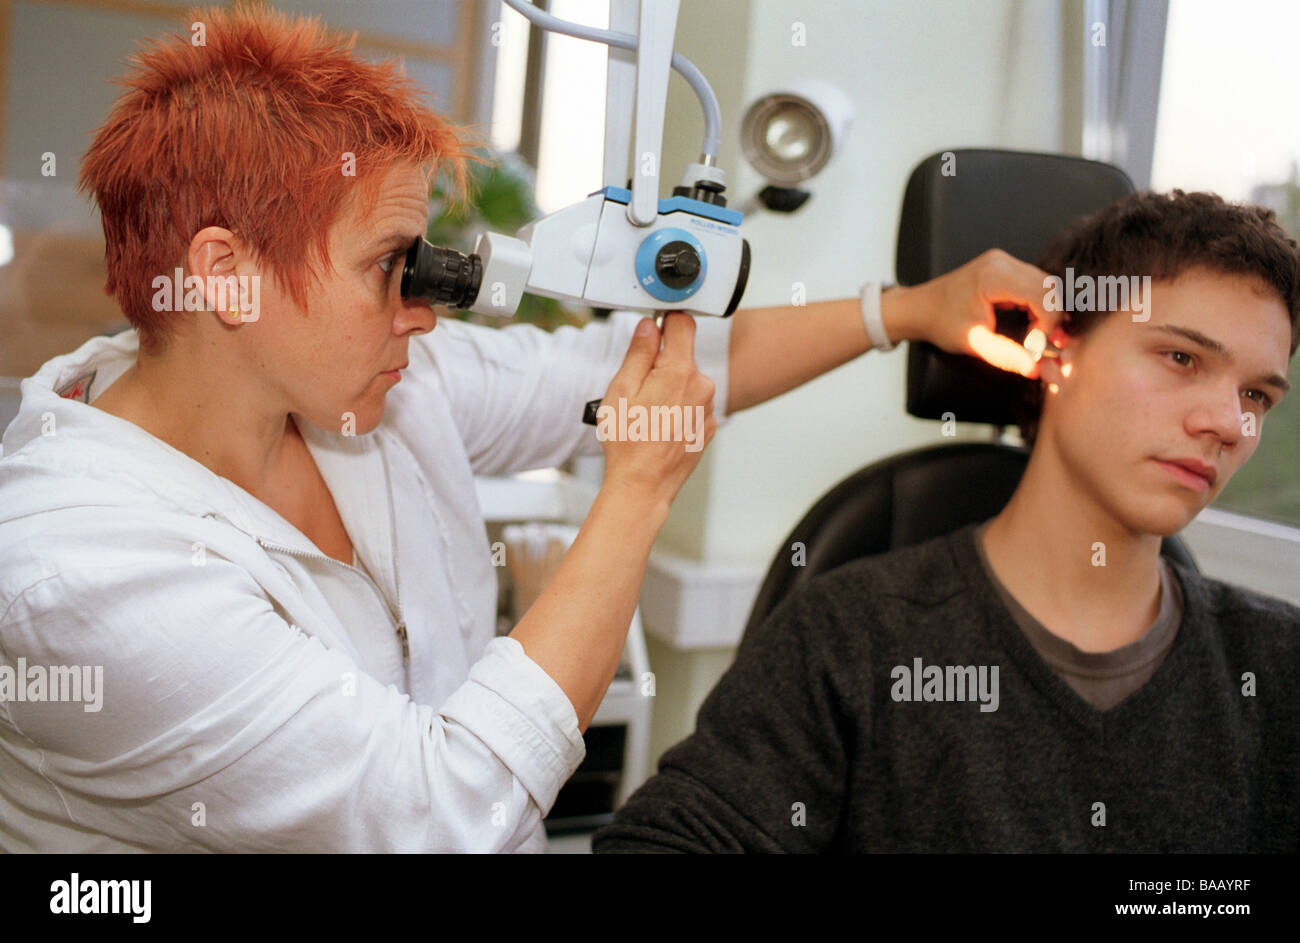 Ent Specialist Treating A Patient Berlin Germany Stock Photo Alamy